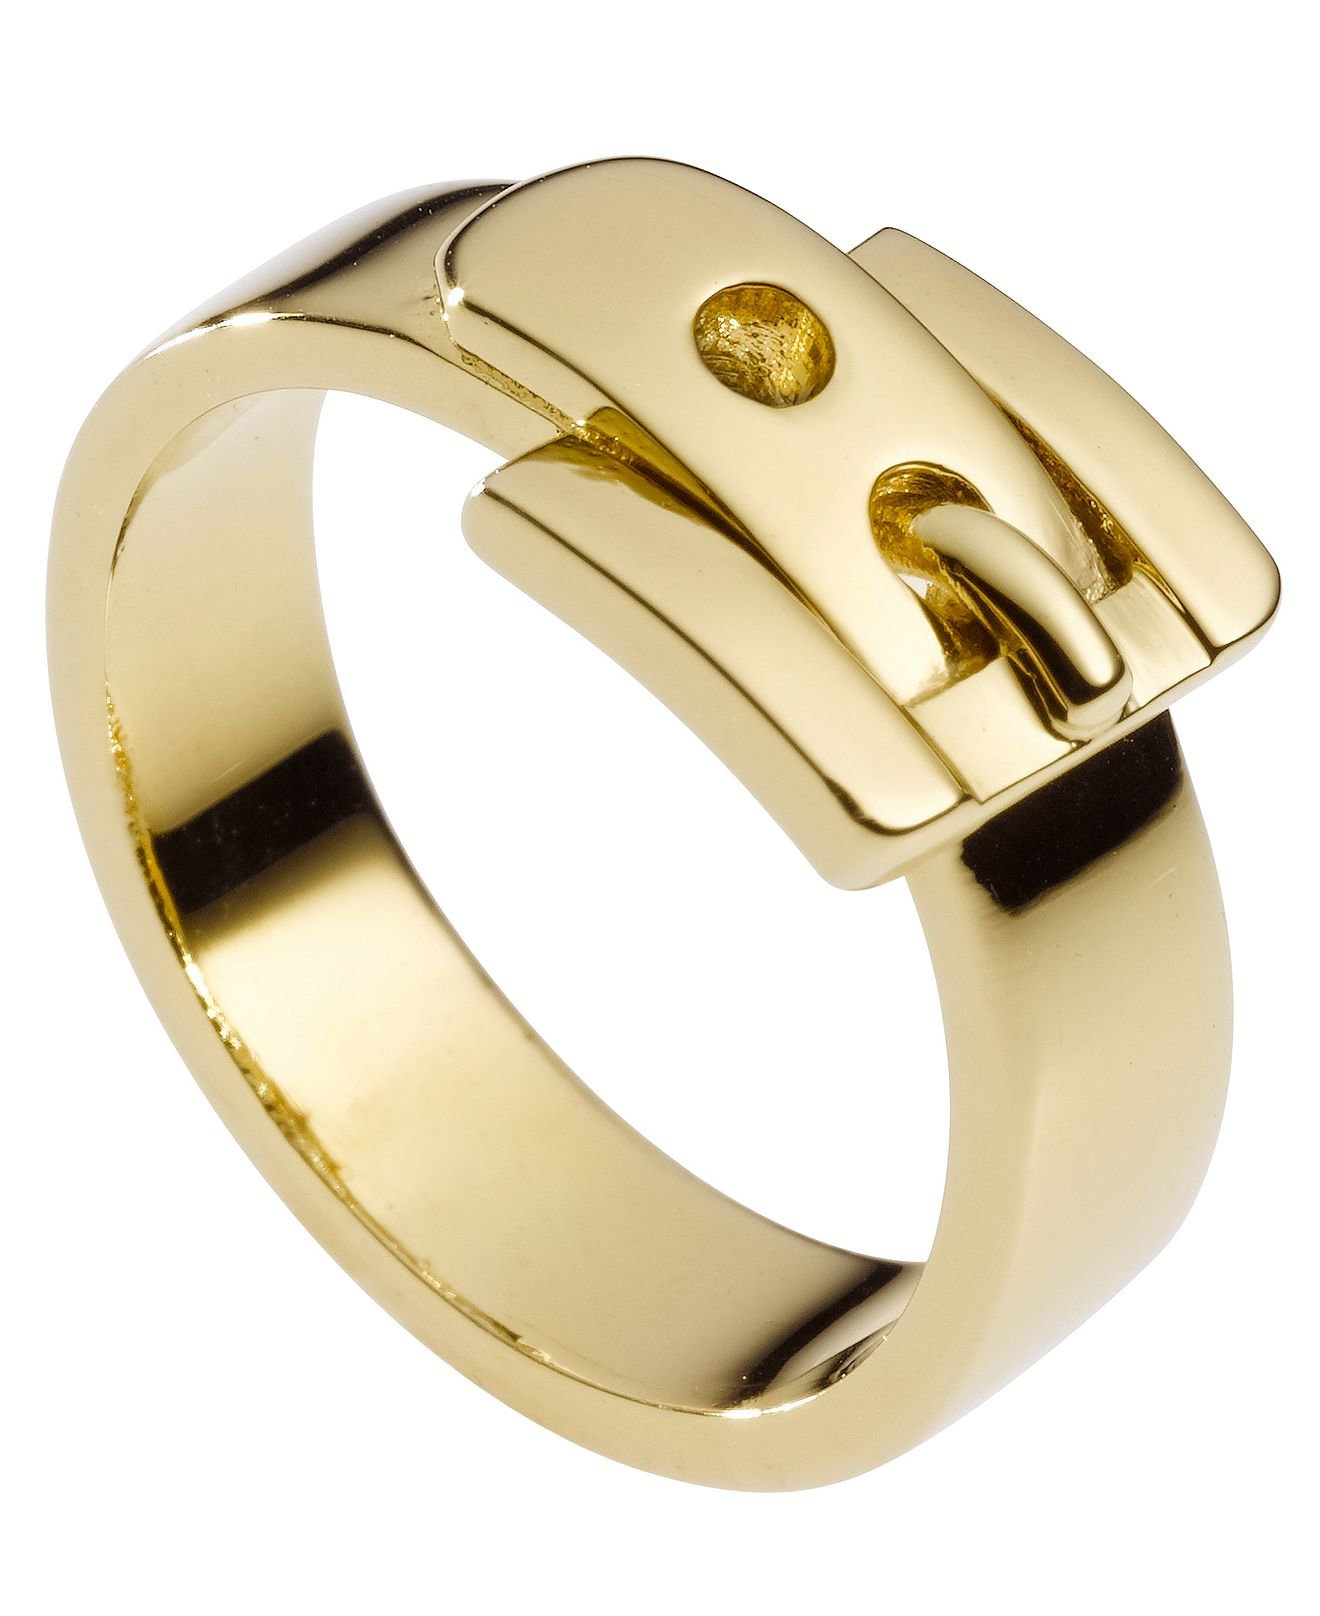 Michael Kors Ring Gold Tone Buckle Ring from Macys